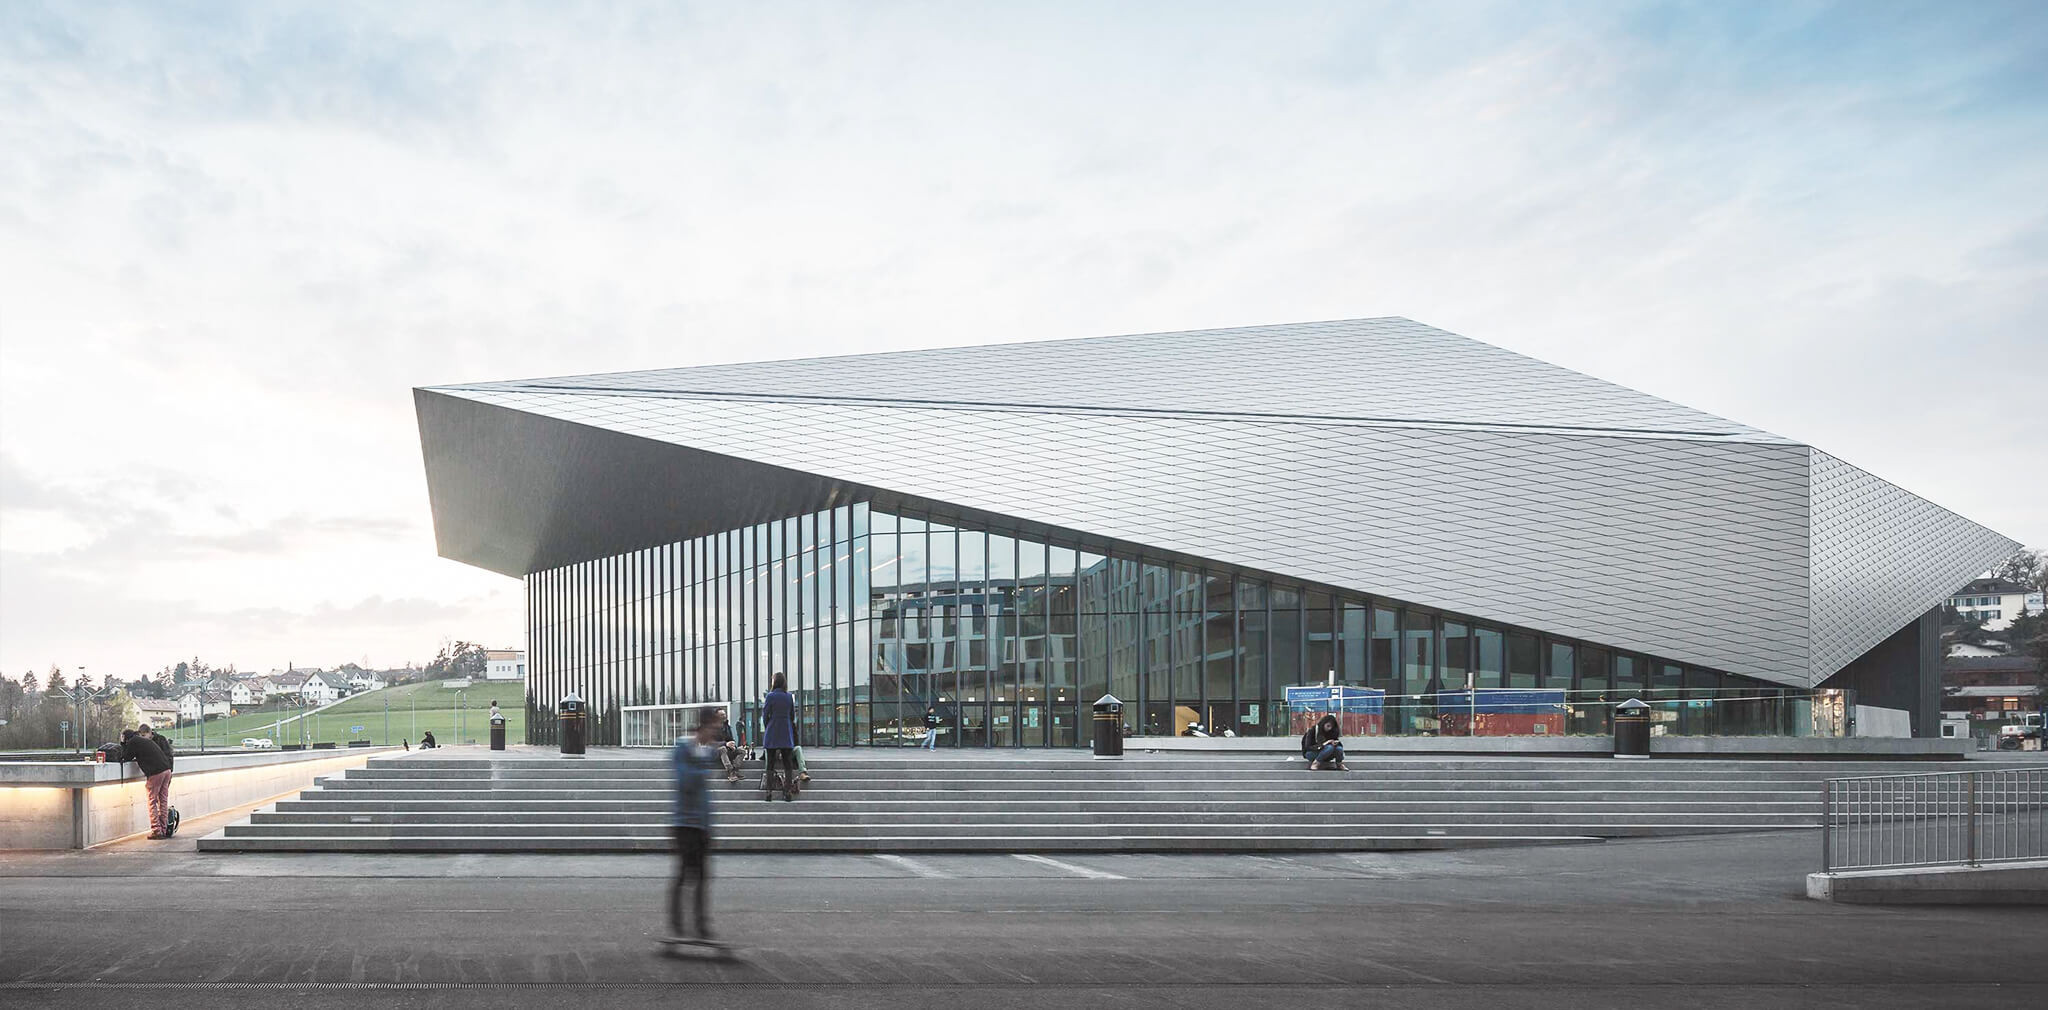 Next week's International Athletes Forum is due to take place at the SwissTech Convention Centre in Lausanne ©STCC